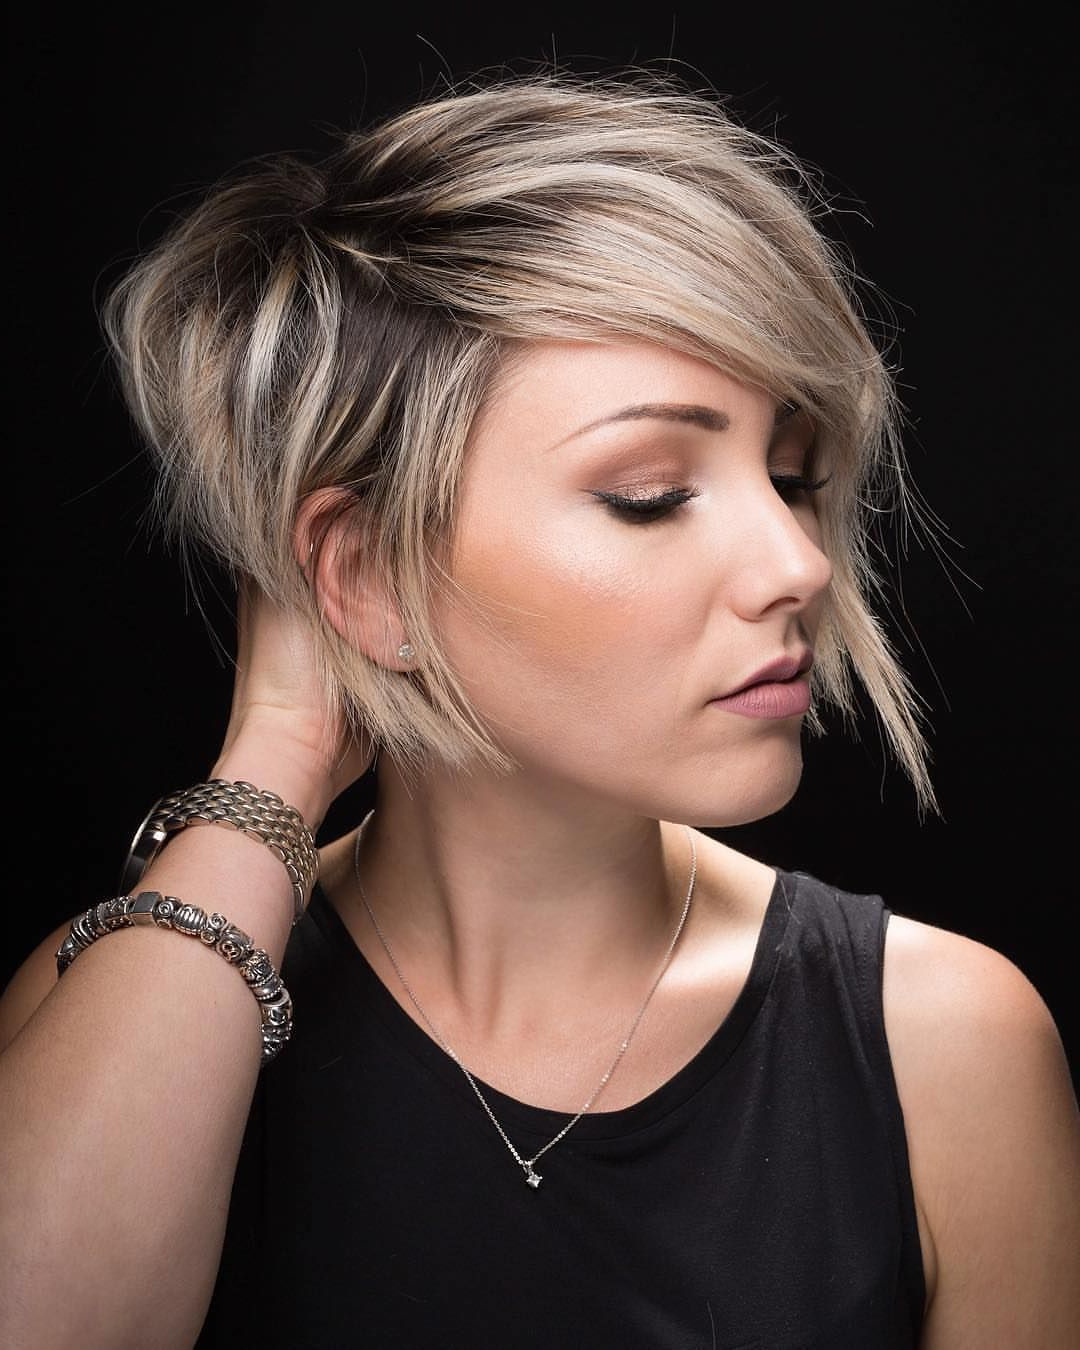 Pin On Hair To Stay Regarding Modern And Edgy Hairstyles (View 3 of 20)